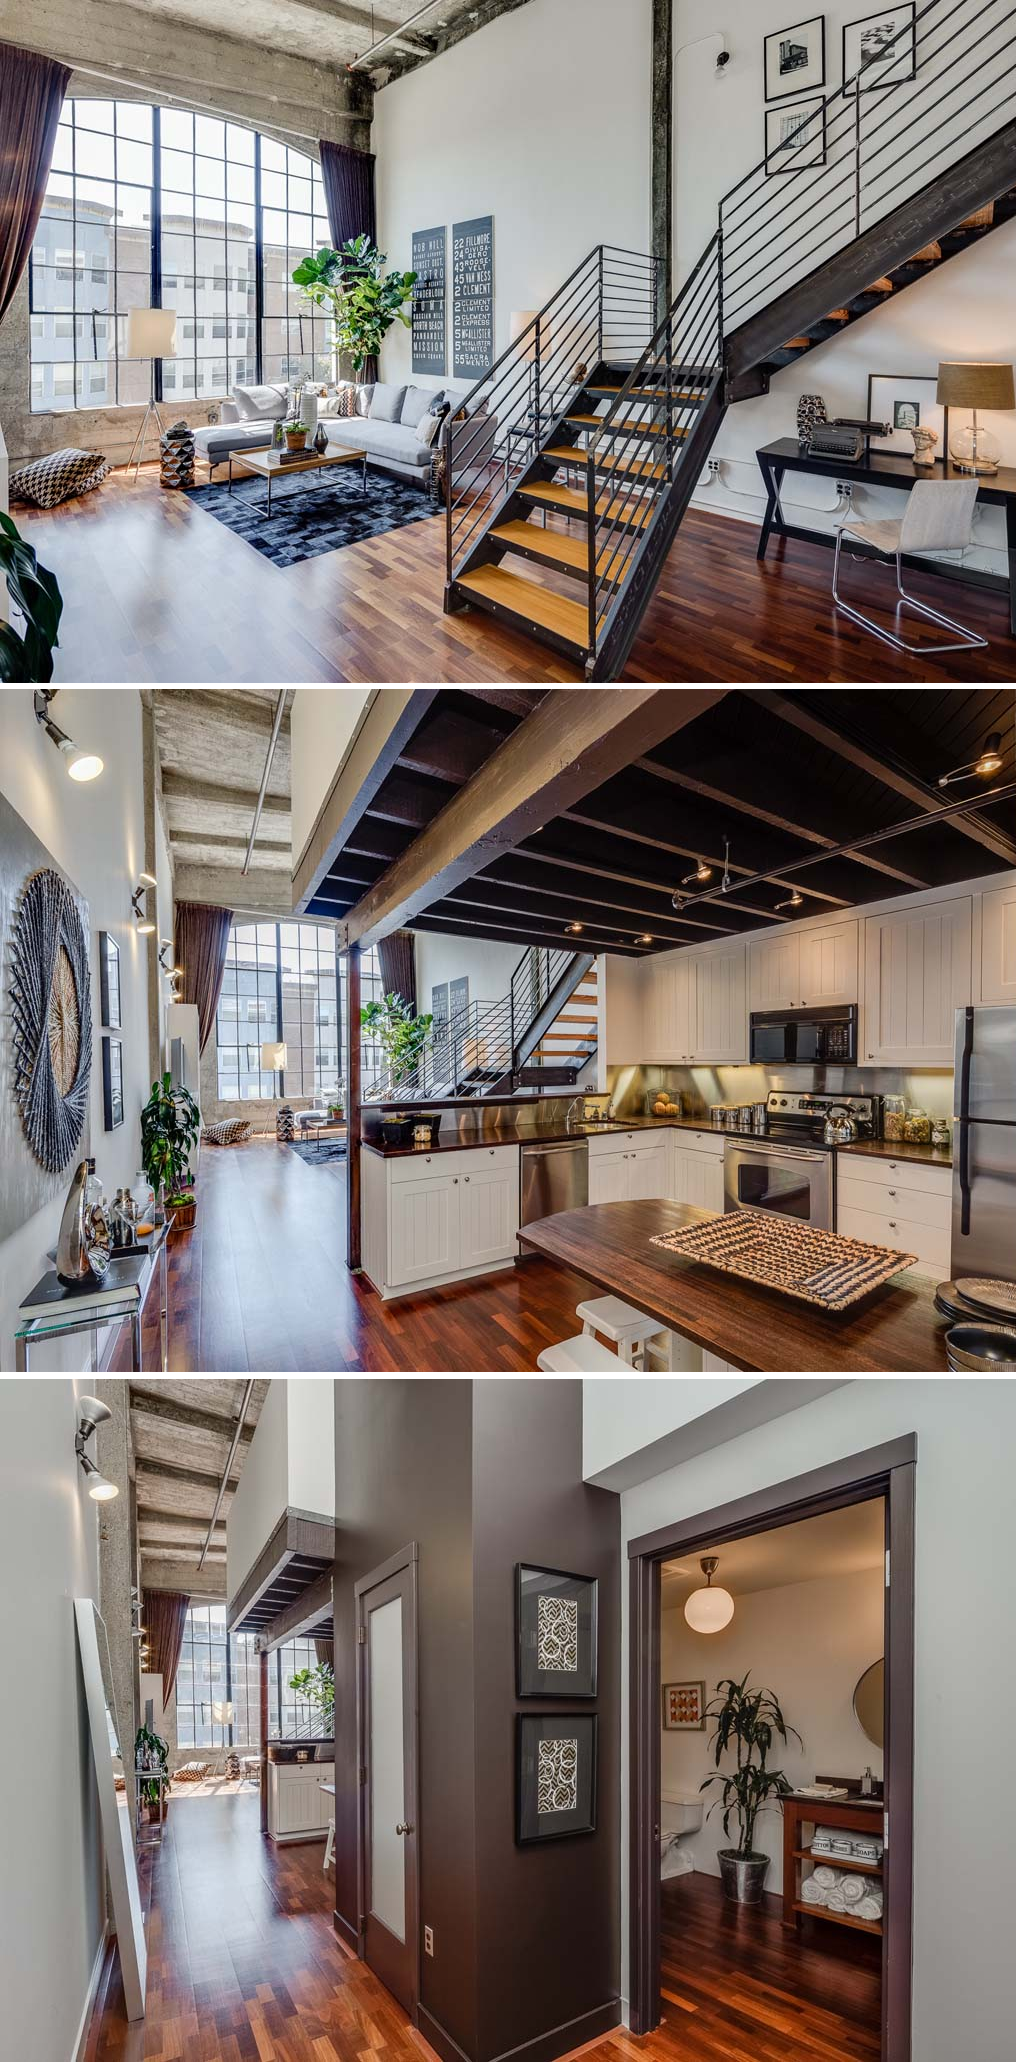 1097 Howard Street Loft à San Francisco | Lofts, San francisco and ...